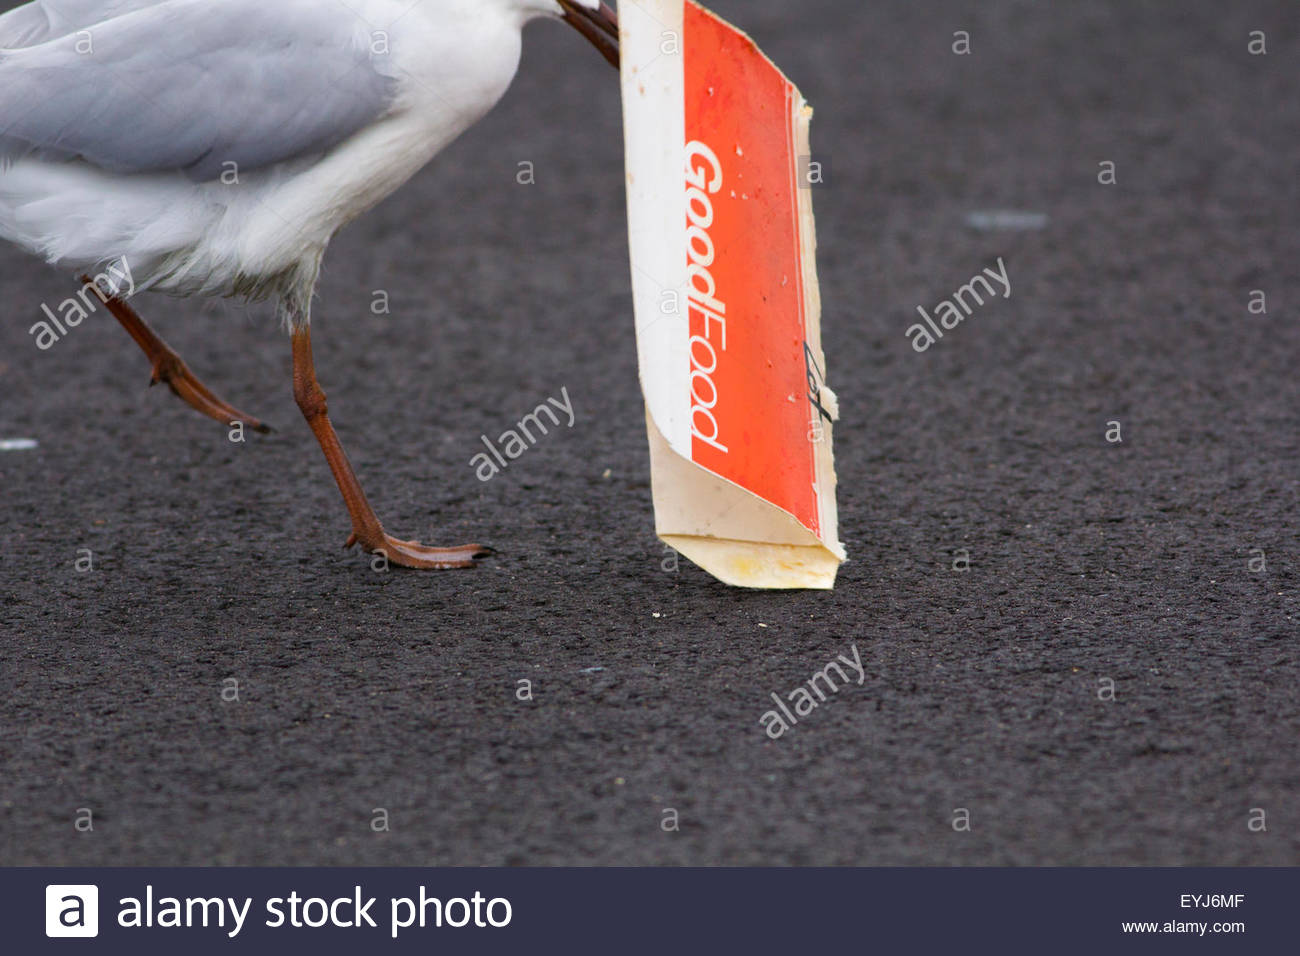 Silver Gull dragging a food container while scavenging scraps. - Stock Image